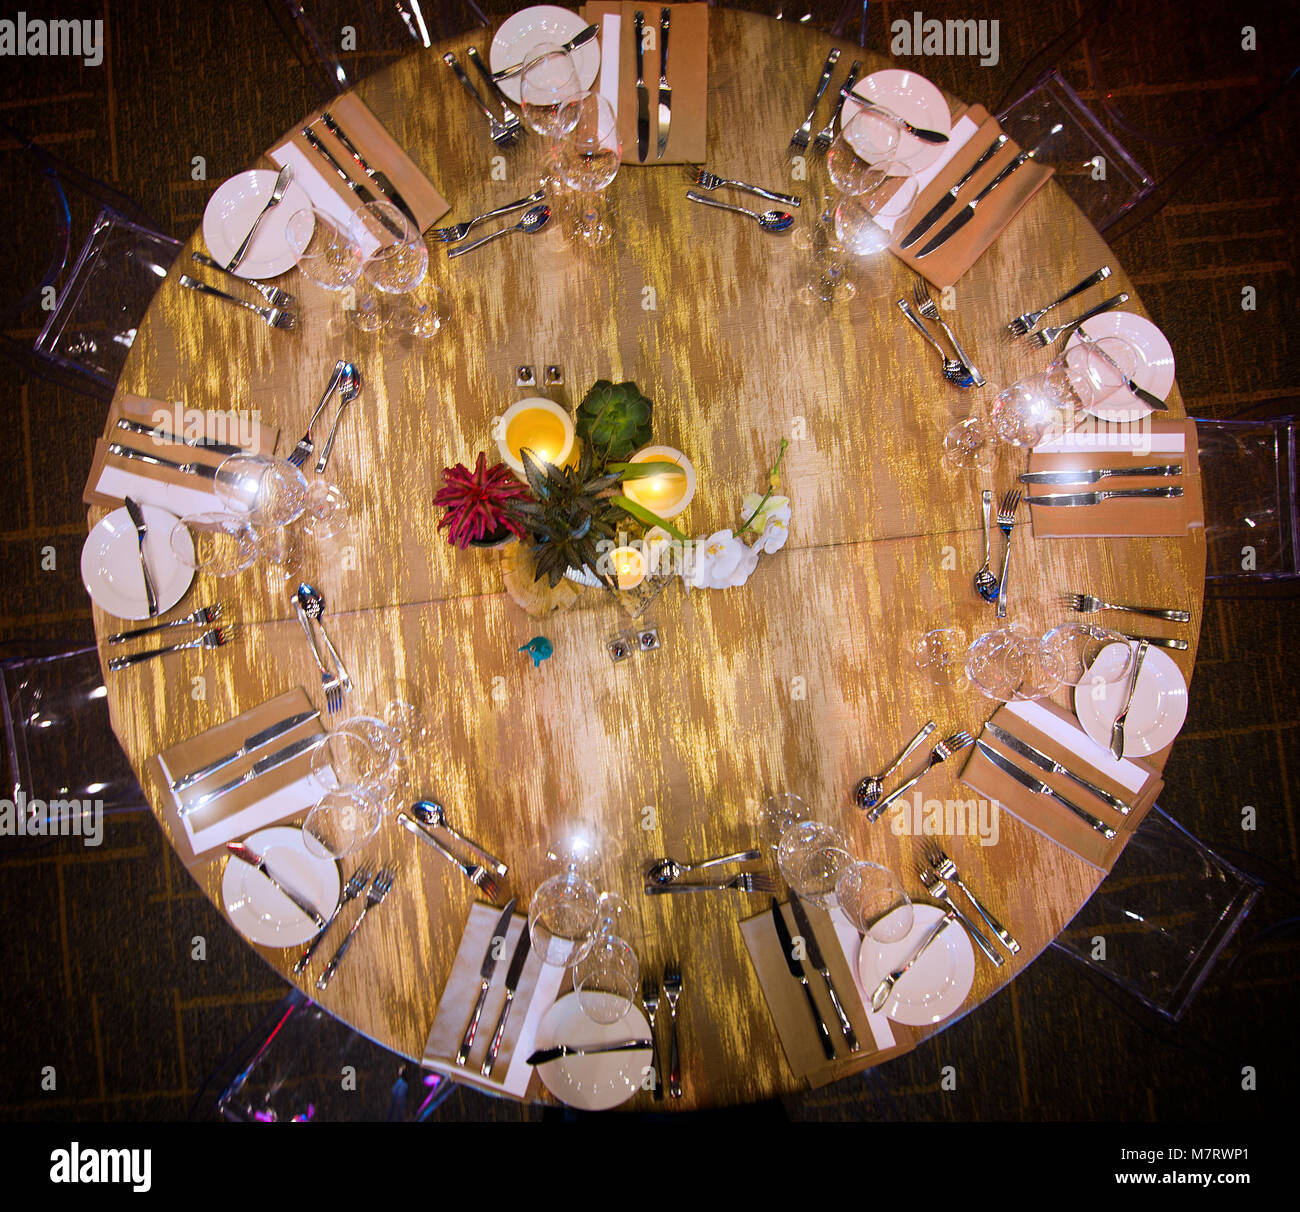 An overhead view of a banquet hall table setup. - Stock Image